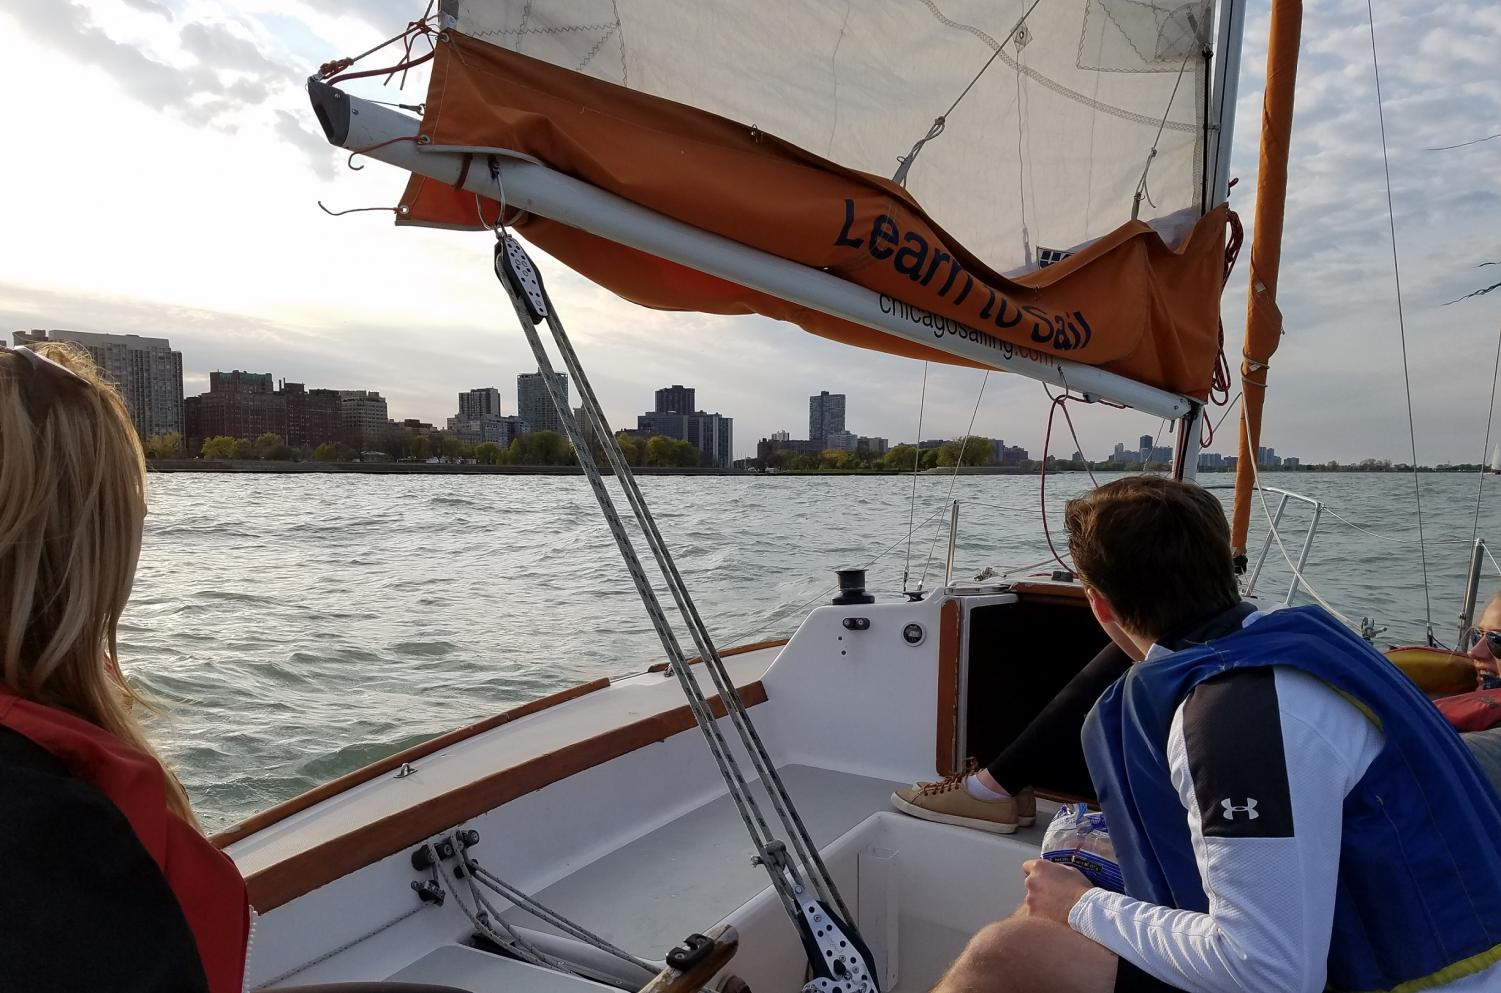 The DePaul sailing club has partnered with Chicago Sailing in Belmont Harbor to provide them access to gear and boats.